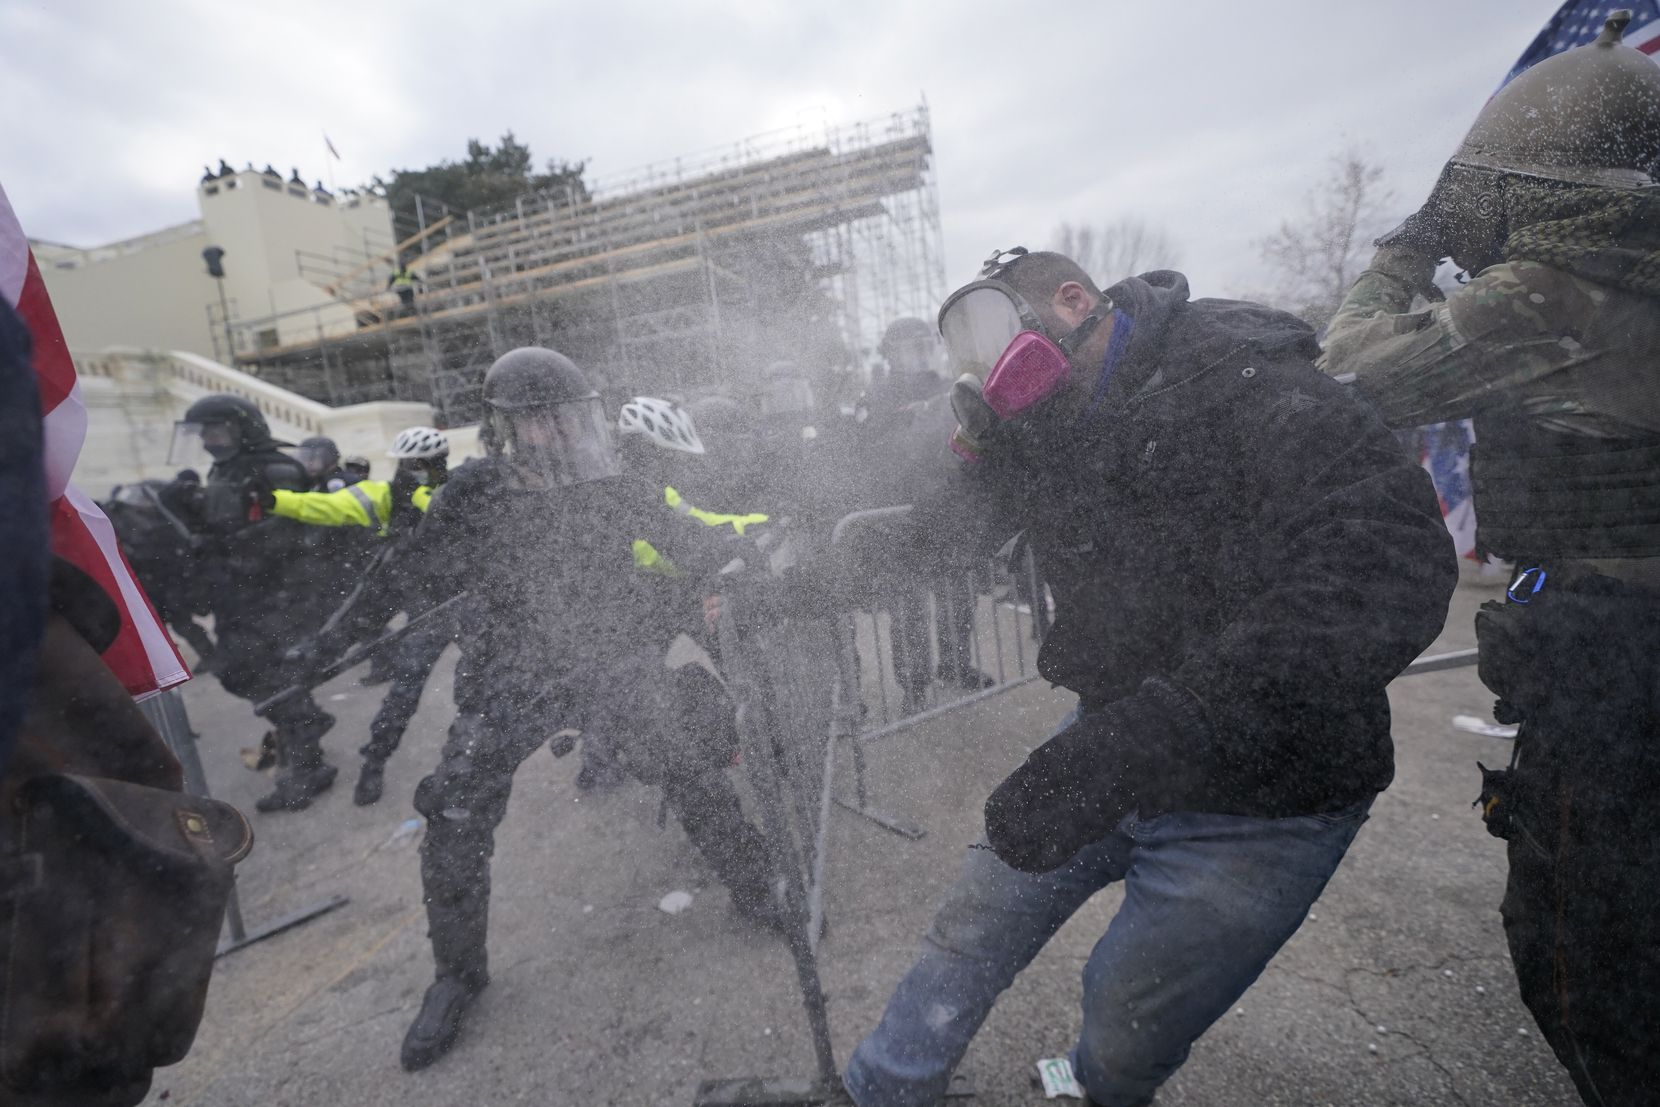 Trump supporters try to break through a police barrier, Wednesday, Jan. 6, 2021, at the Capitol in Washington. As Congress prepares to affirm President-elect Joe Biden's victory, thousands of people have gathered to show their support for President Donald Trump and his claims of election fraud.